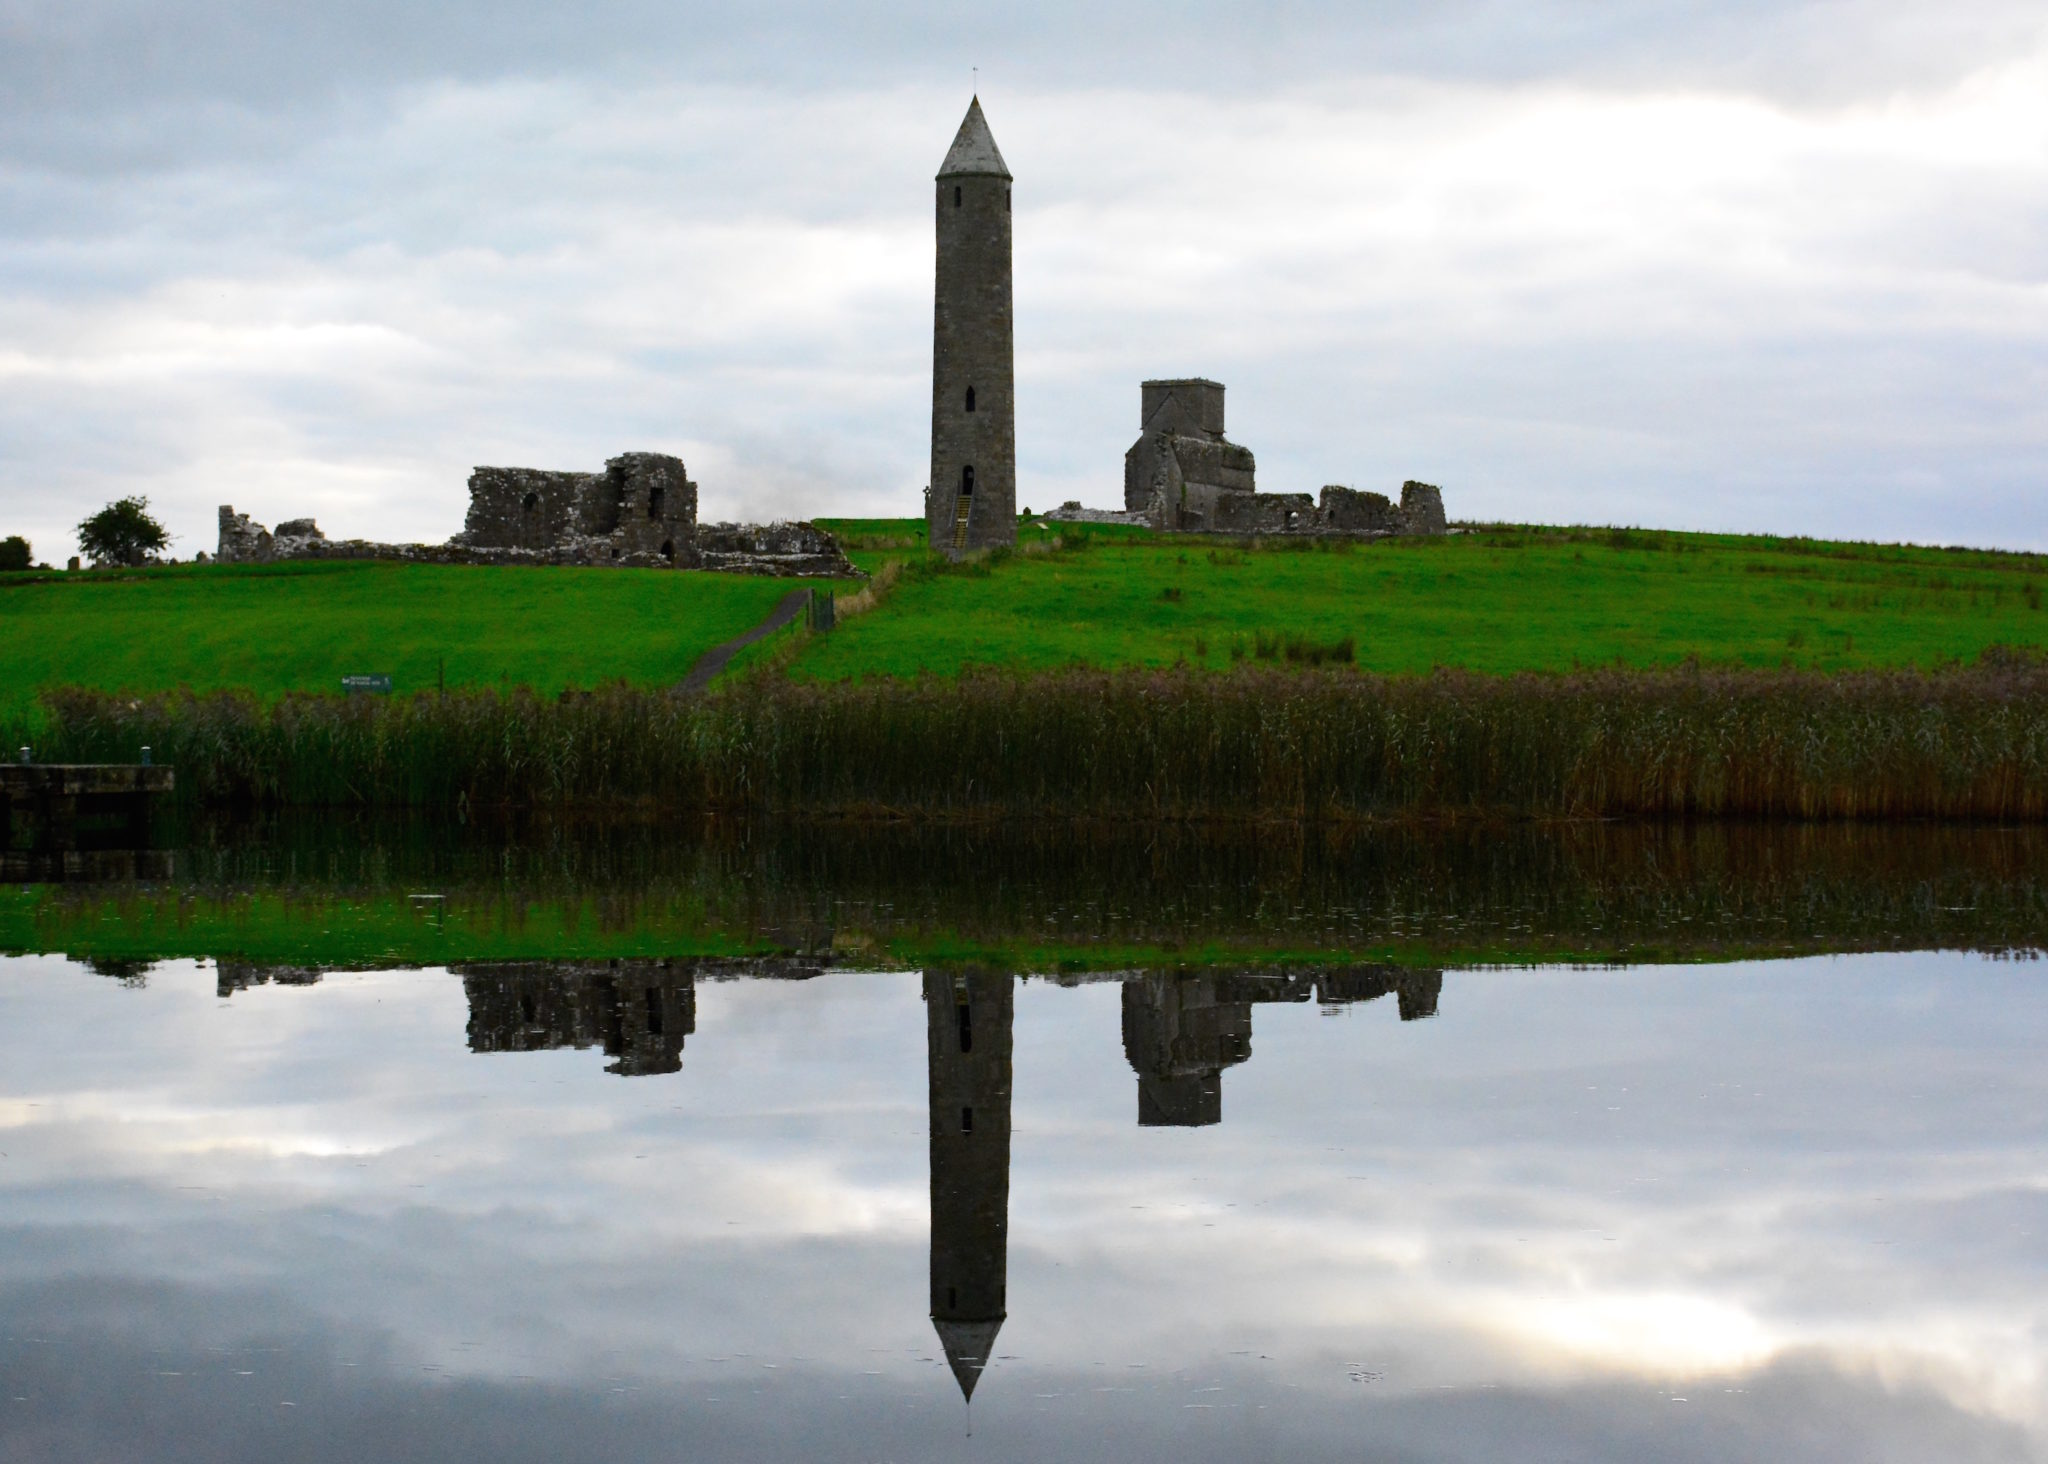 a-lovely-planet-devenish-island-monastic-site